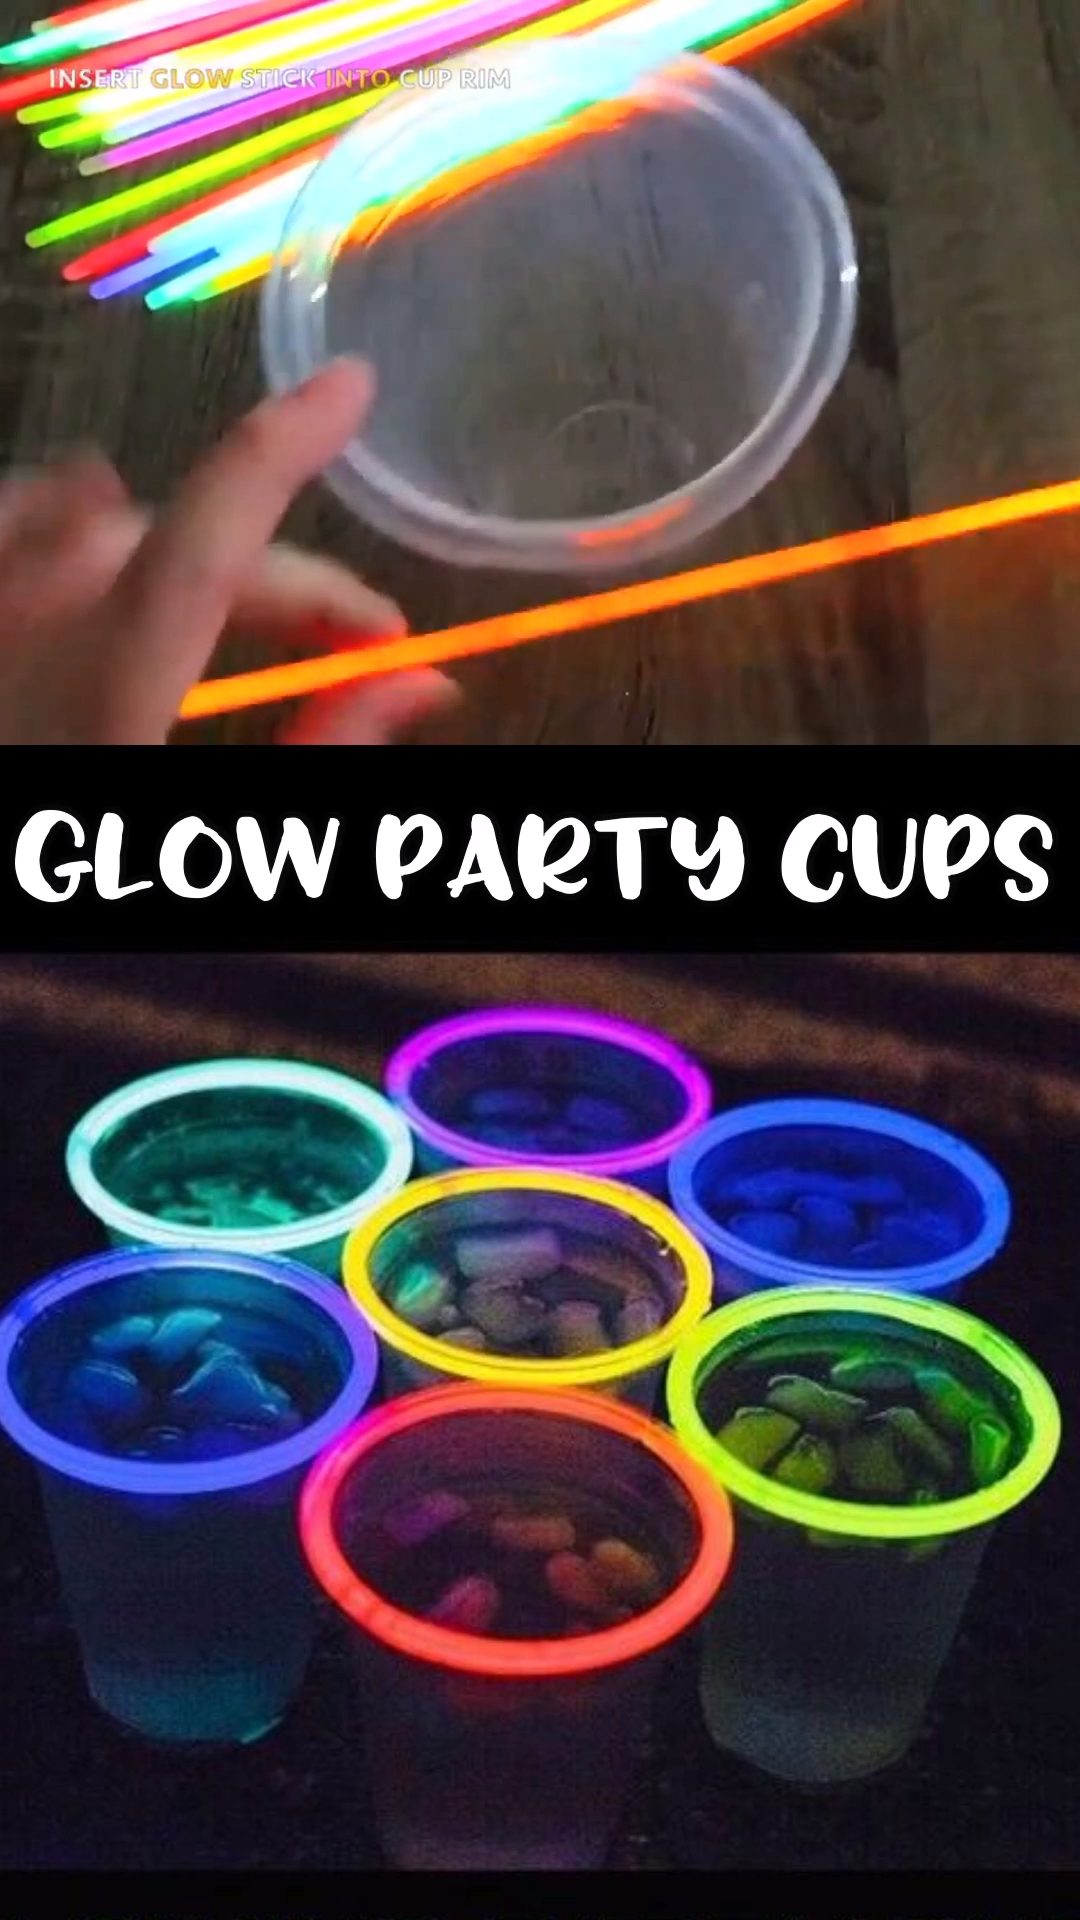 Glow in the Dark Party Cups Glow in the Dark Party Cups summer fun idea for parties and bbqs 4th of July glowstick idea Etsy find affiliate link in the Dark Party Cups Gl...